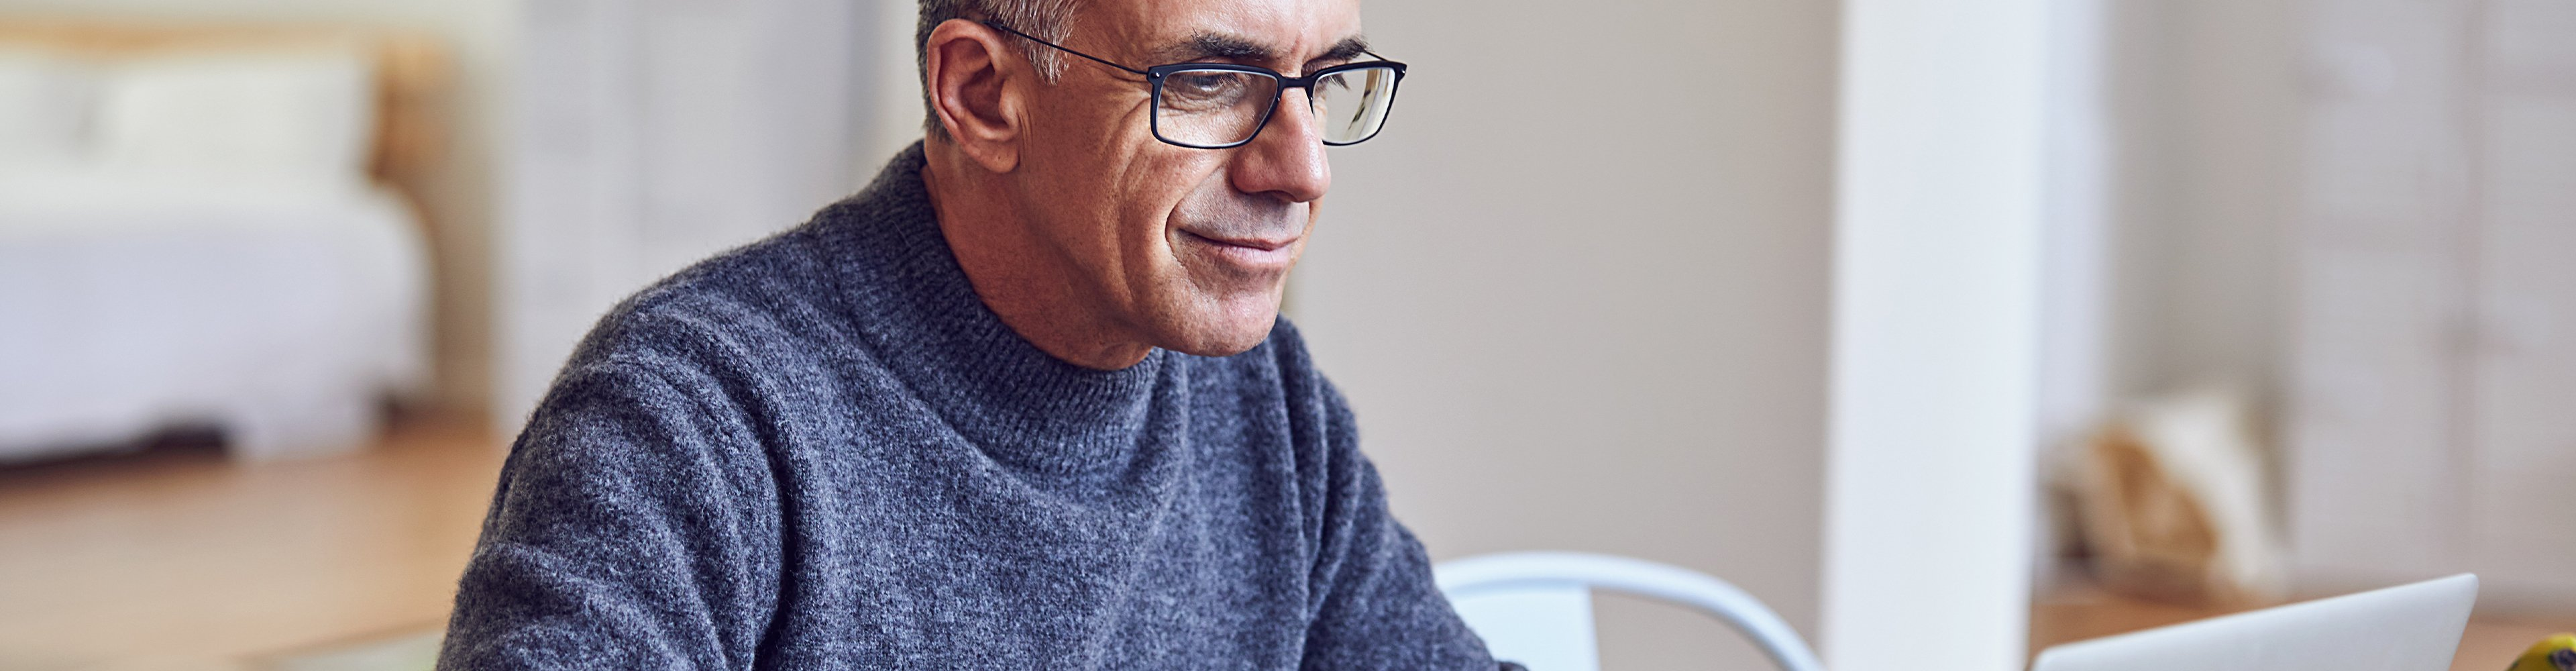 5 ways to prepare for your hearing evaluation